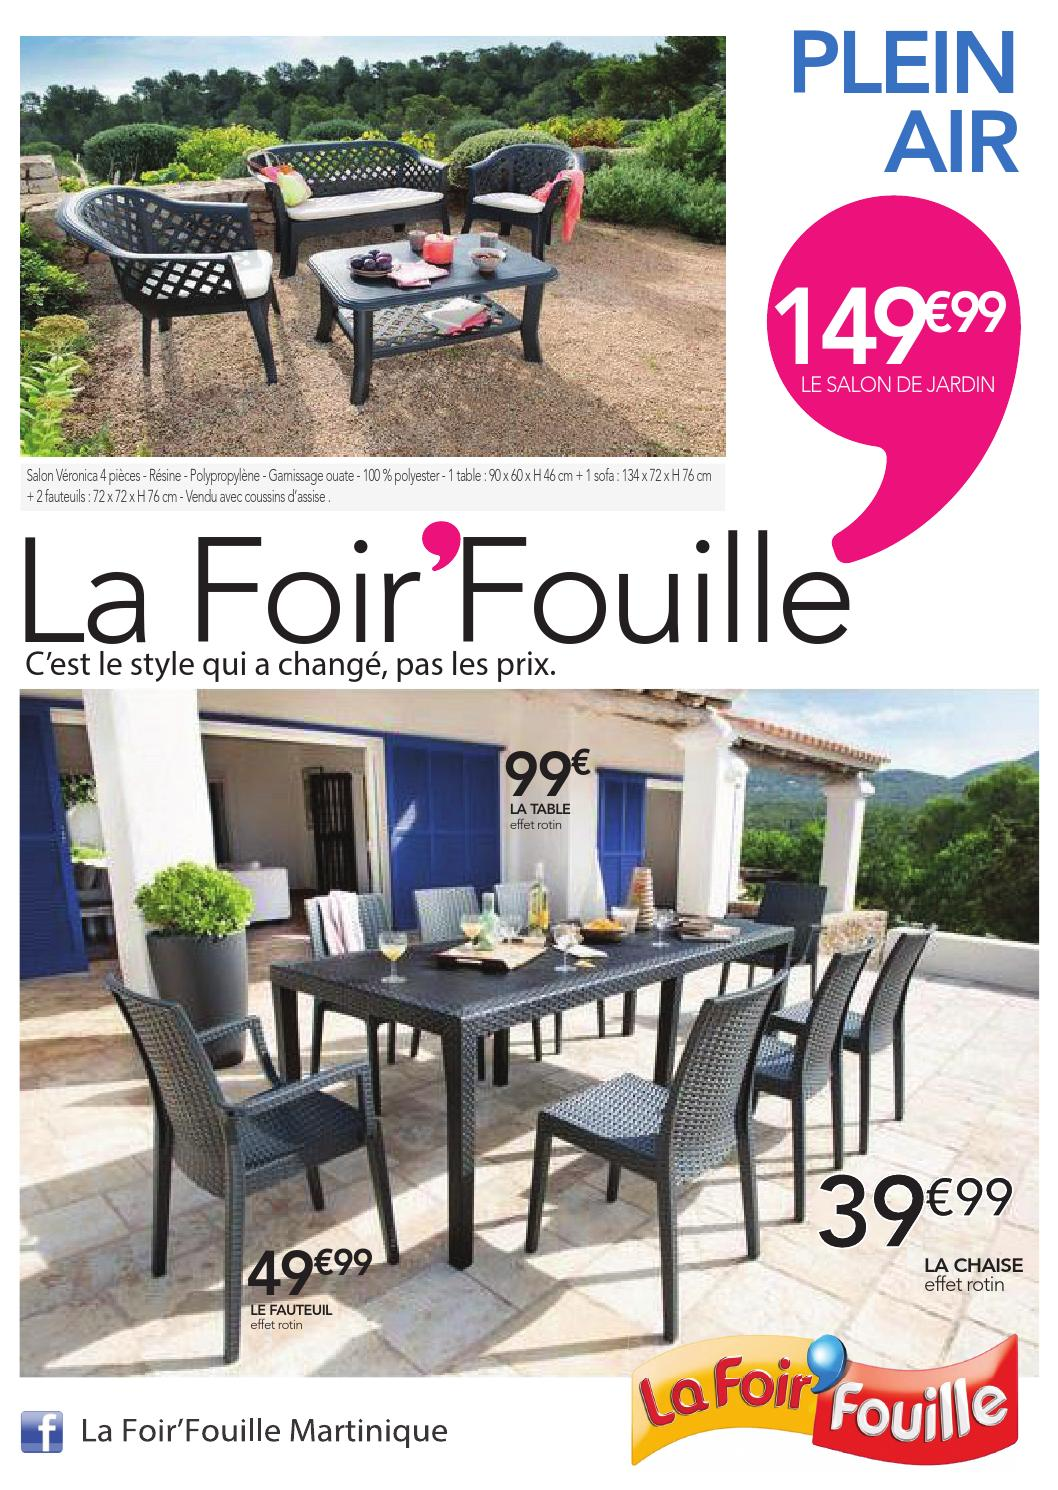 Catalogue plein air by la foir 39 fouille issuu - Petite table de jardin la foir fouille ...